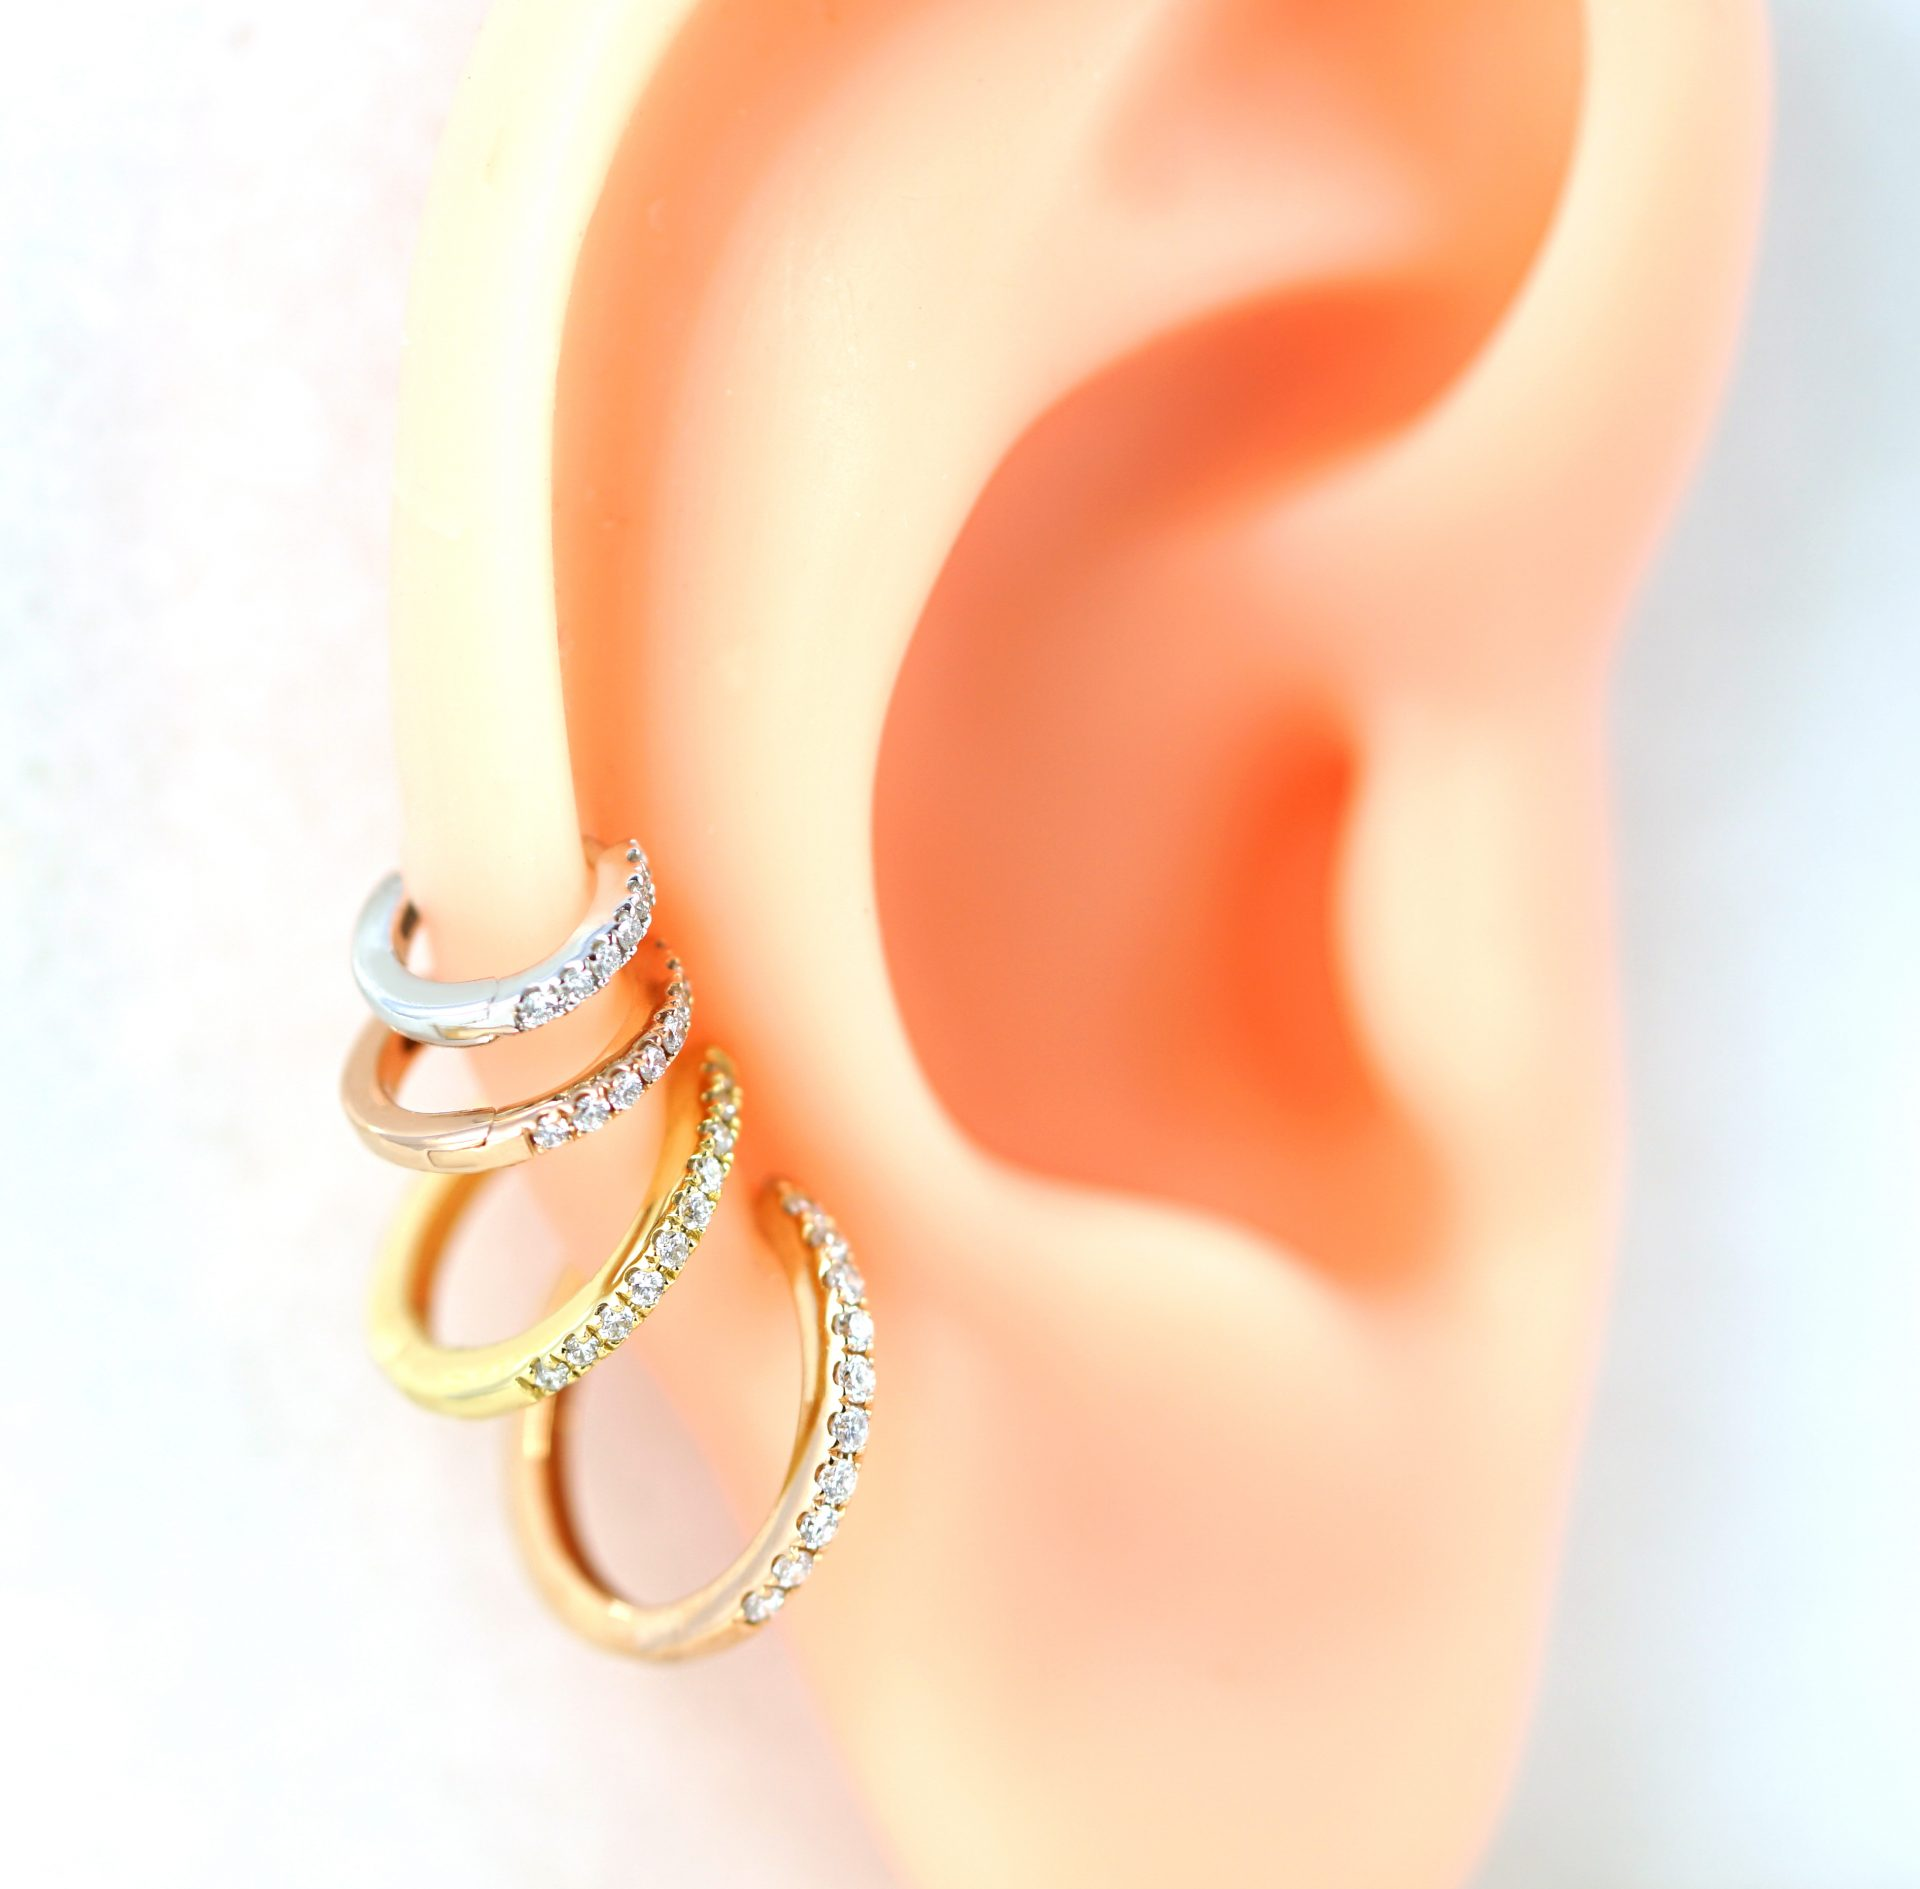 lena-cohen-luxury-piercing-london-18k-yellow-white-rose-gold-diamond-huggie-hoops-tragus-helix-lobe-earring